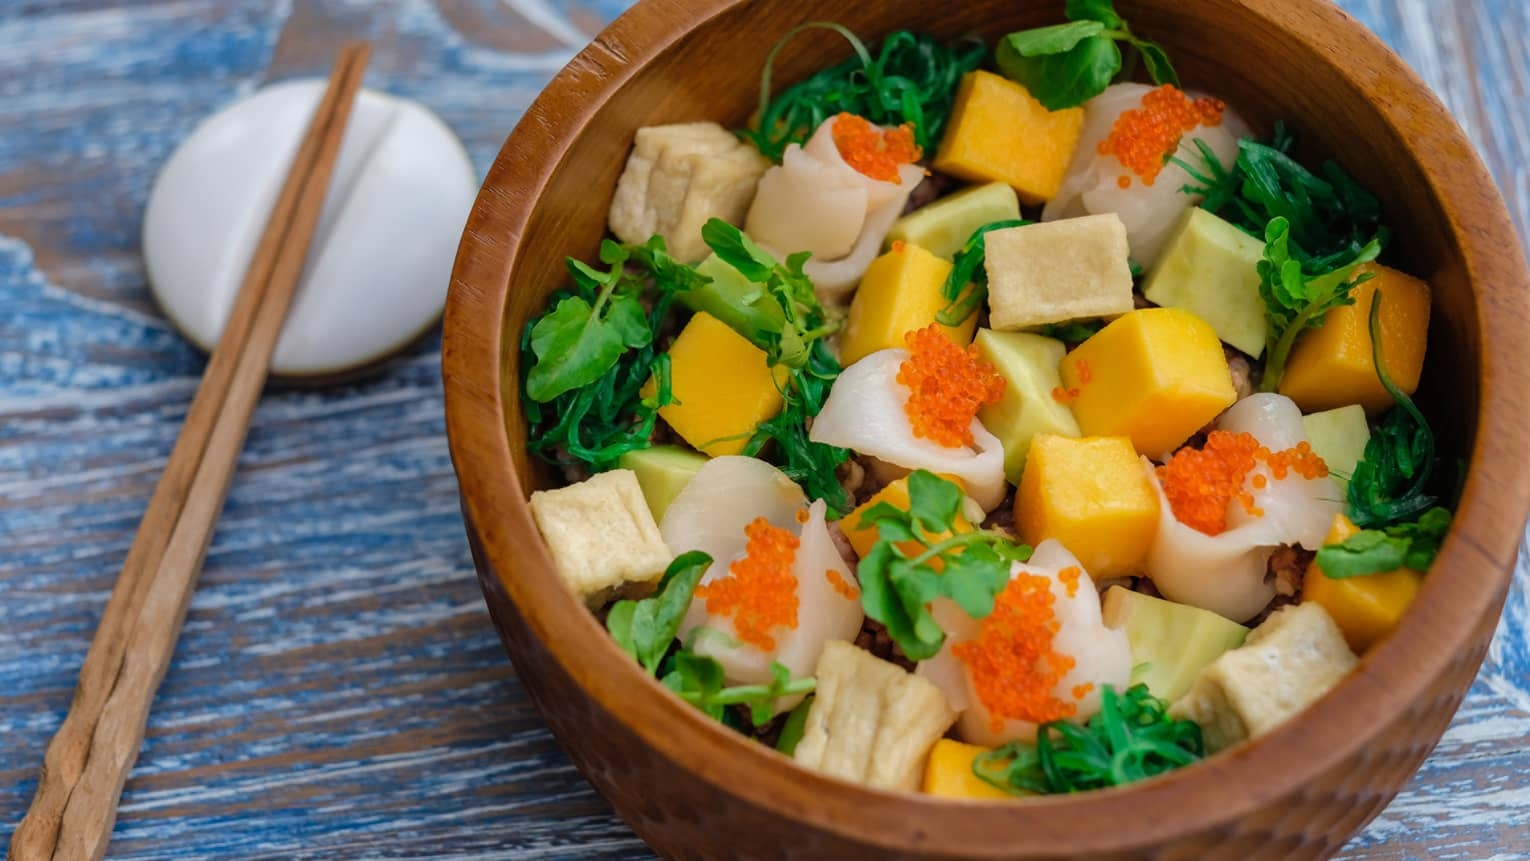 A wooden bowl full of colourful veggies and tofu, with wooden chopsticks resting on a porcelain dish beside it